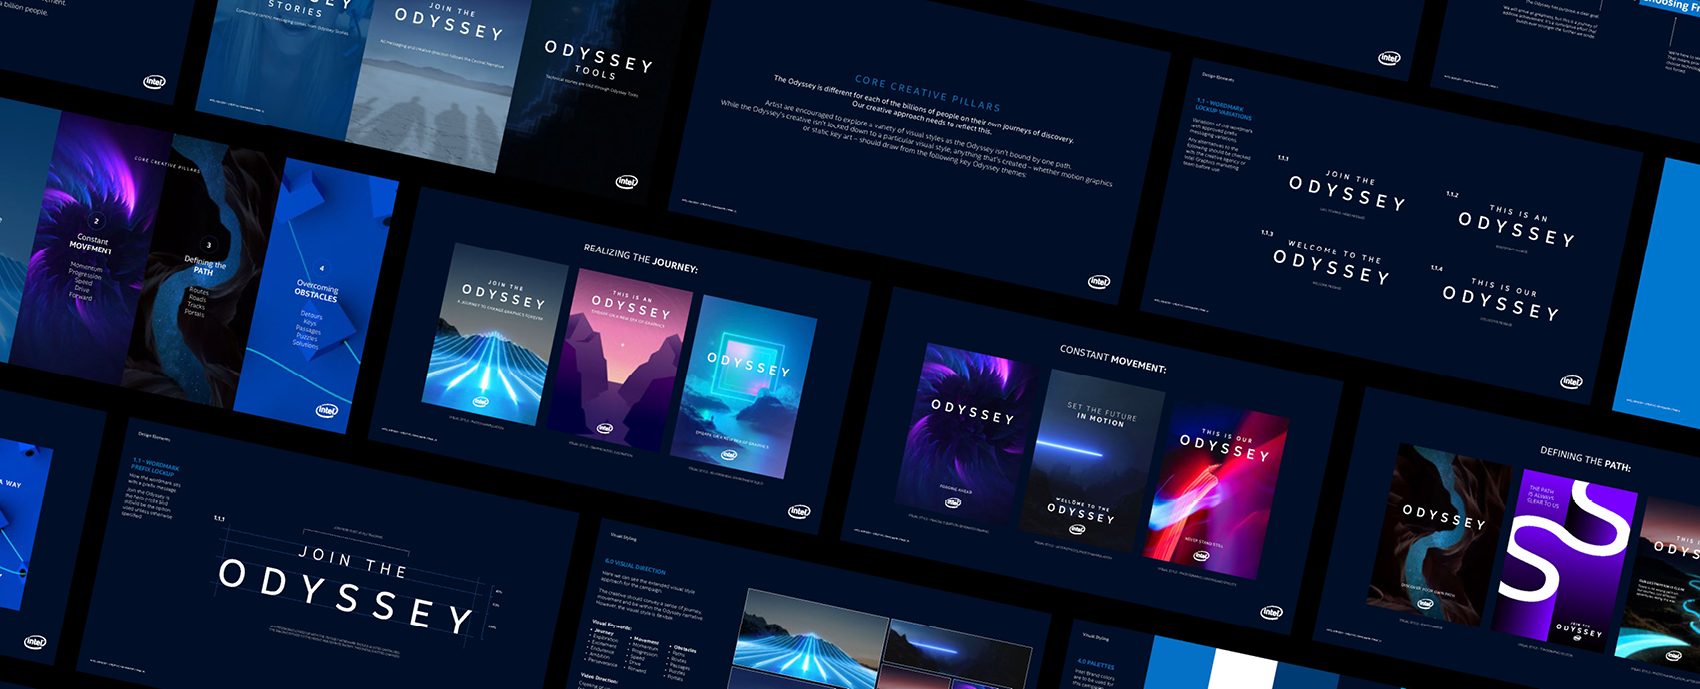 Intel Odyssey - Overview